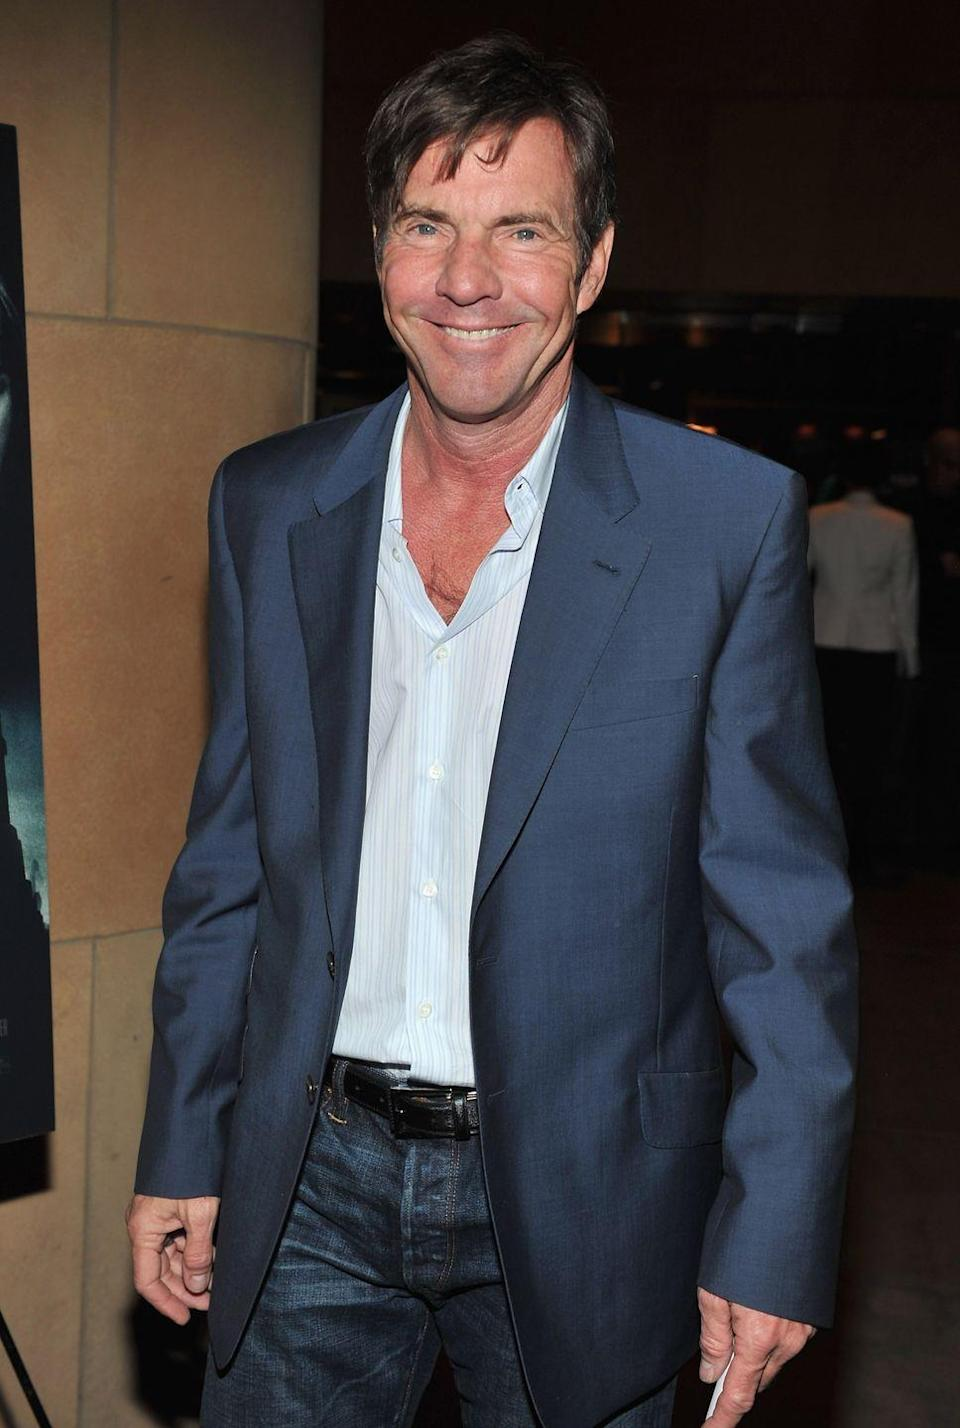 <p>In case you missed Dennis Quaid's low-growing chest hair, here's a better look. The actor isn't afraid to open up a few extra buttons to show it off.</p>